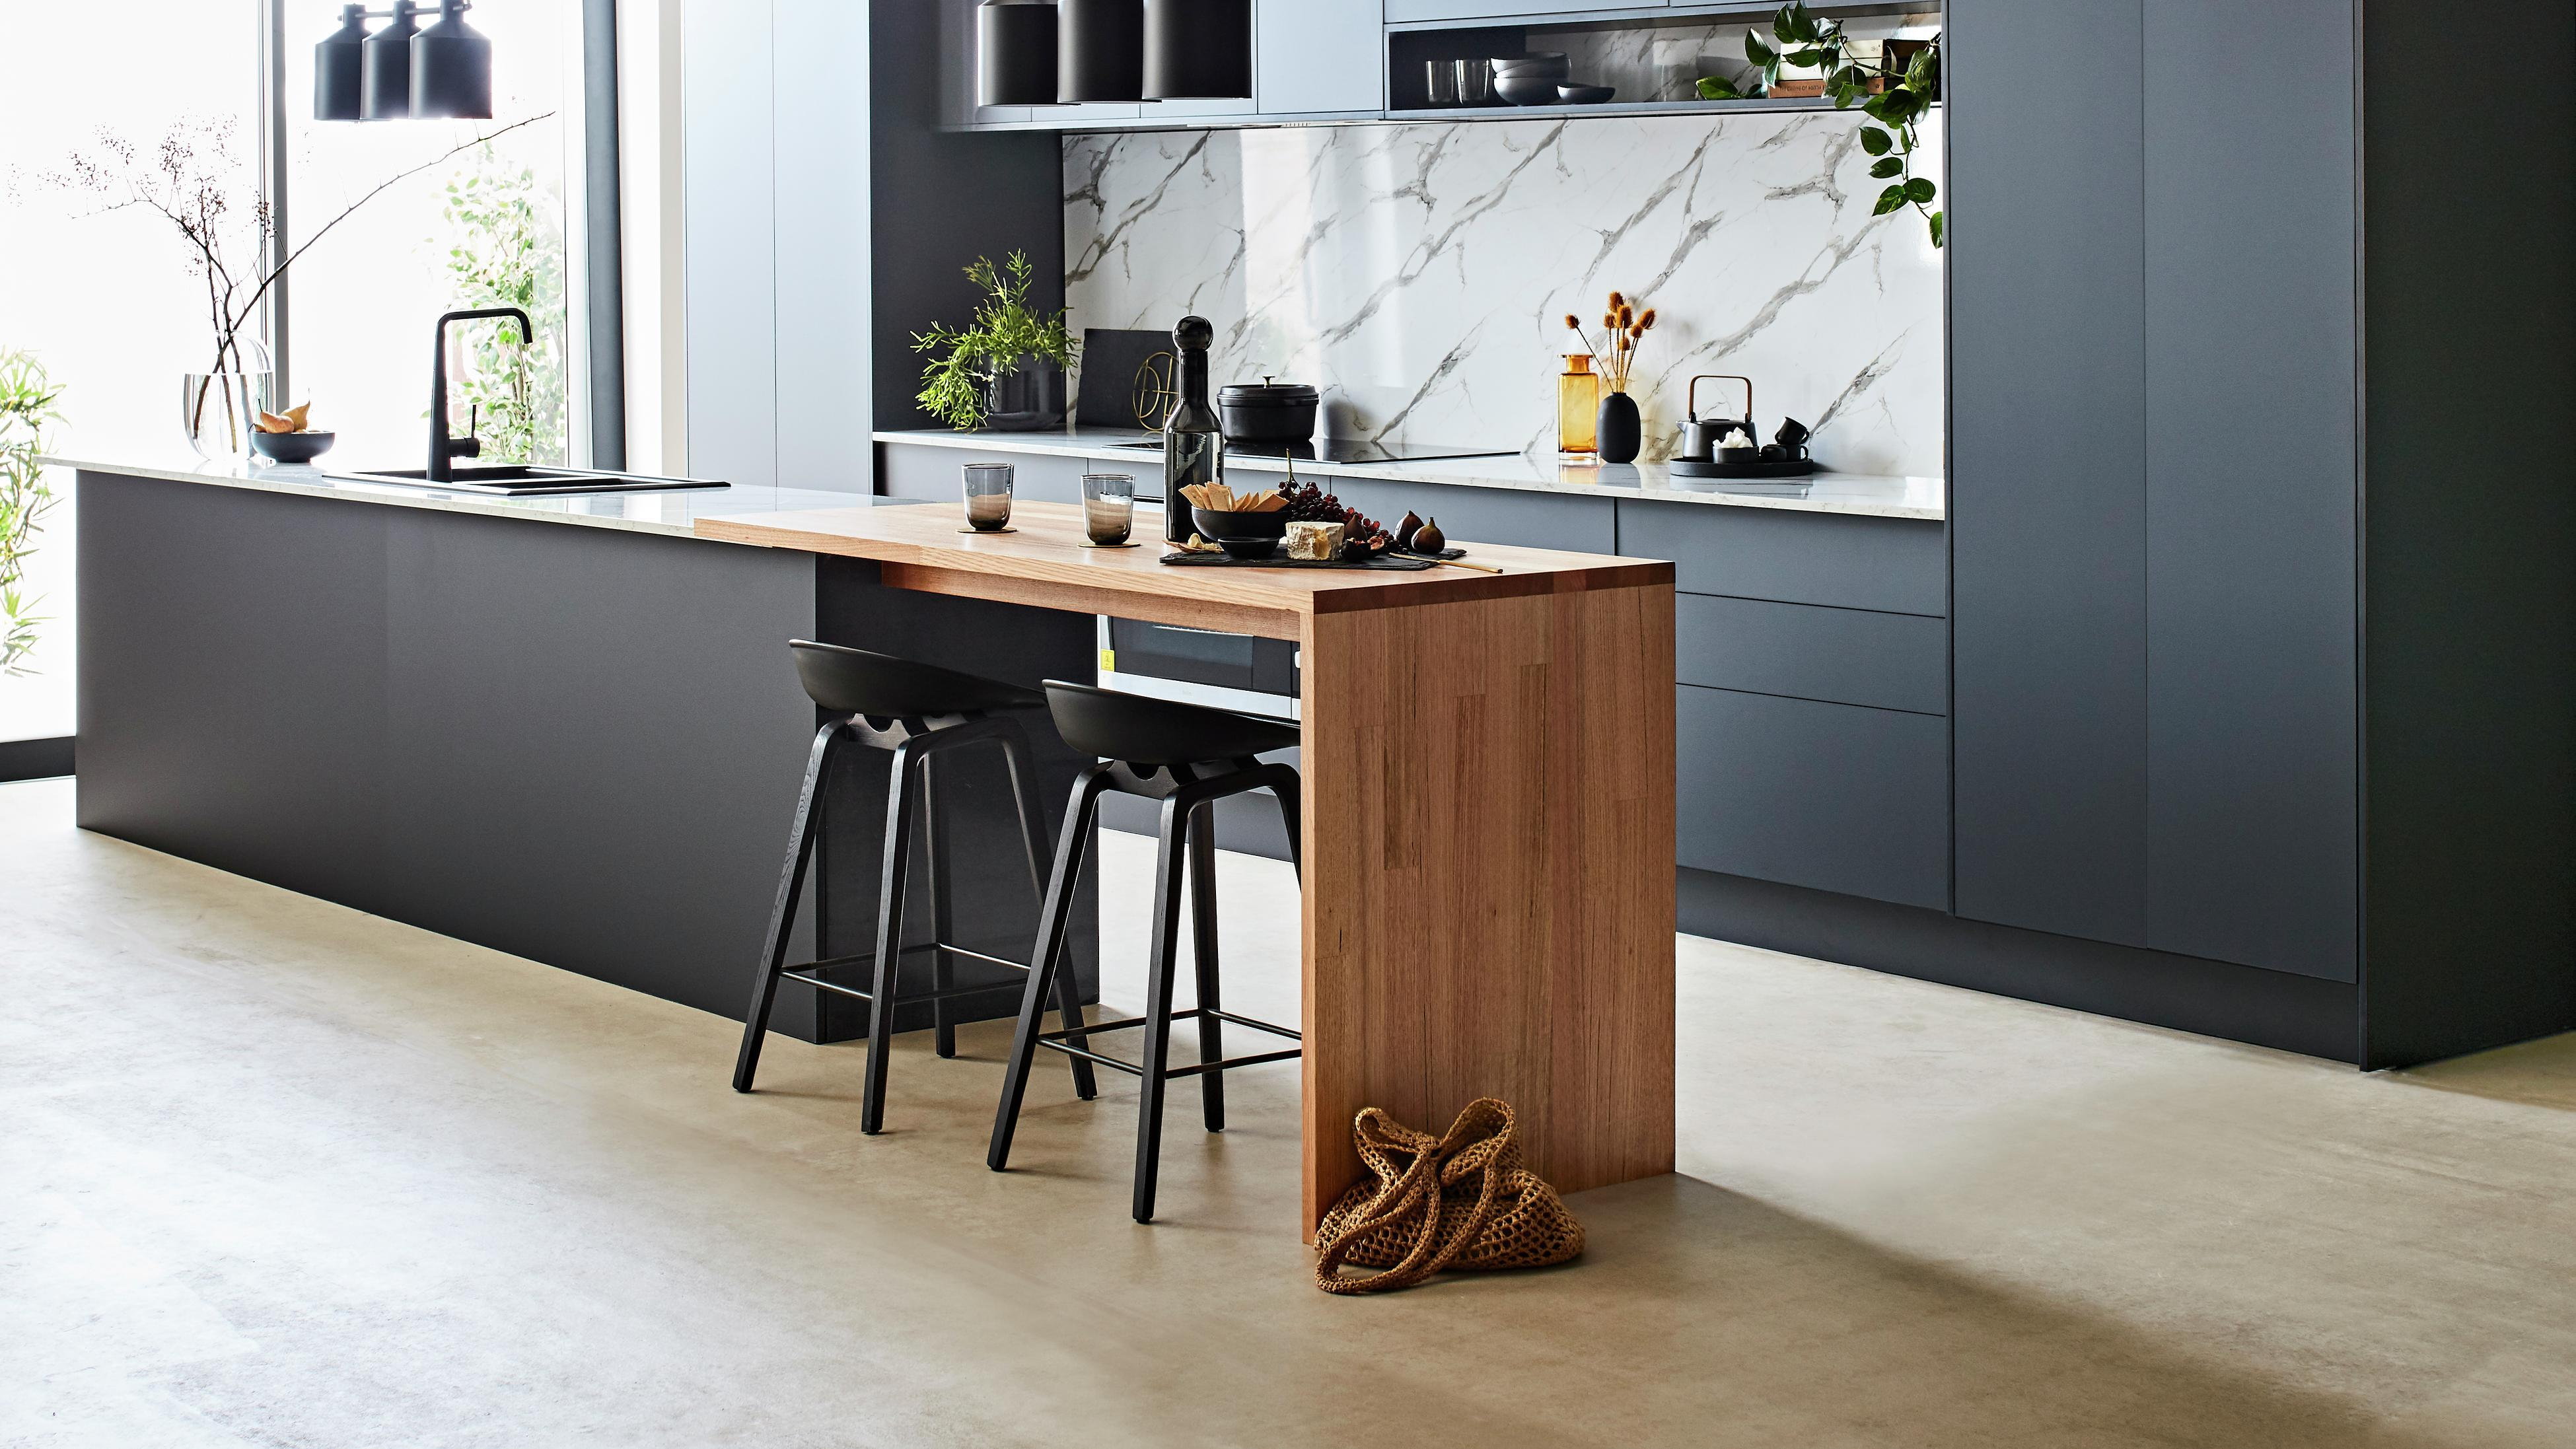 Kitchen featuring timber island, black cabinetry and marble splashback.